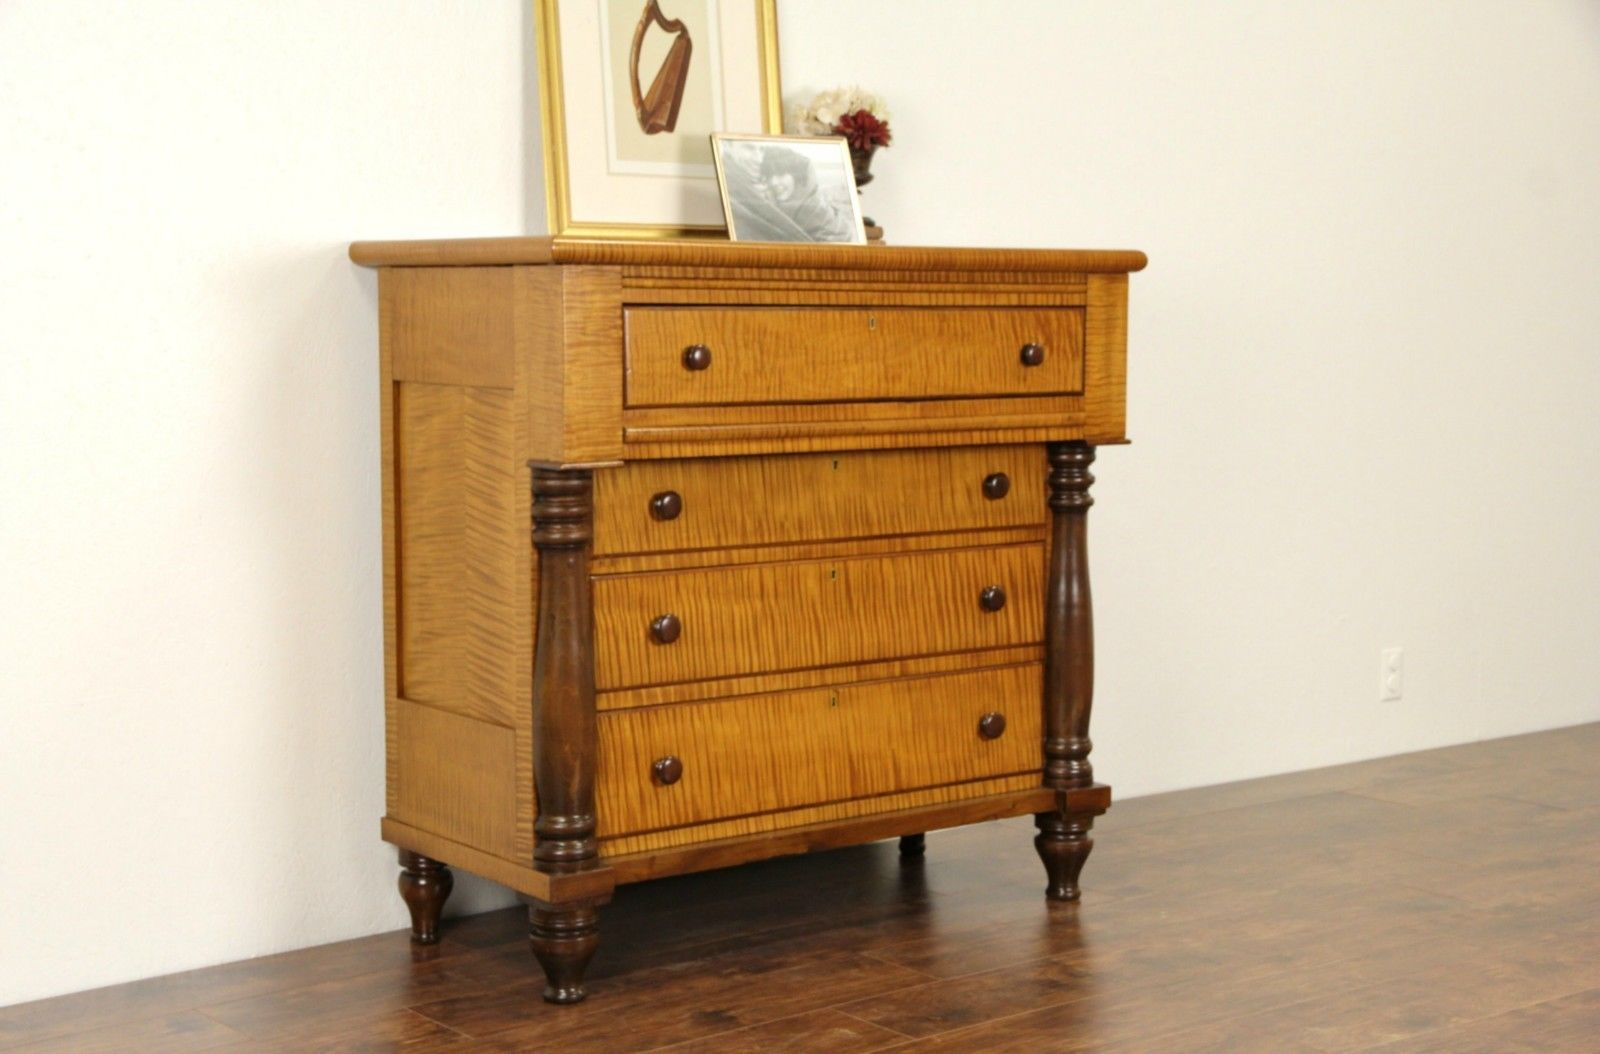 Tiger Curly Maple 1830 s American Empire Chest or Dresser